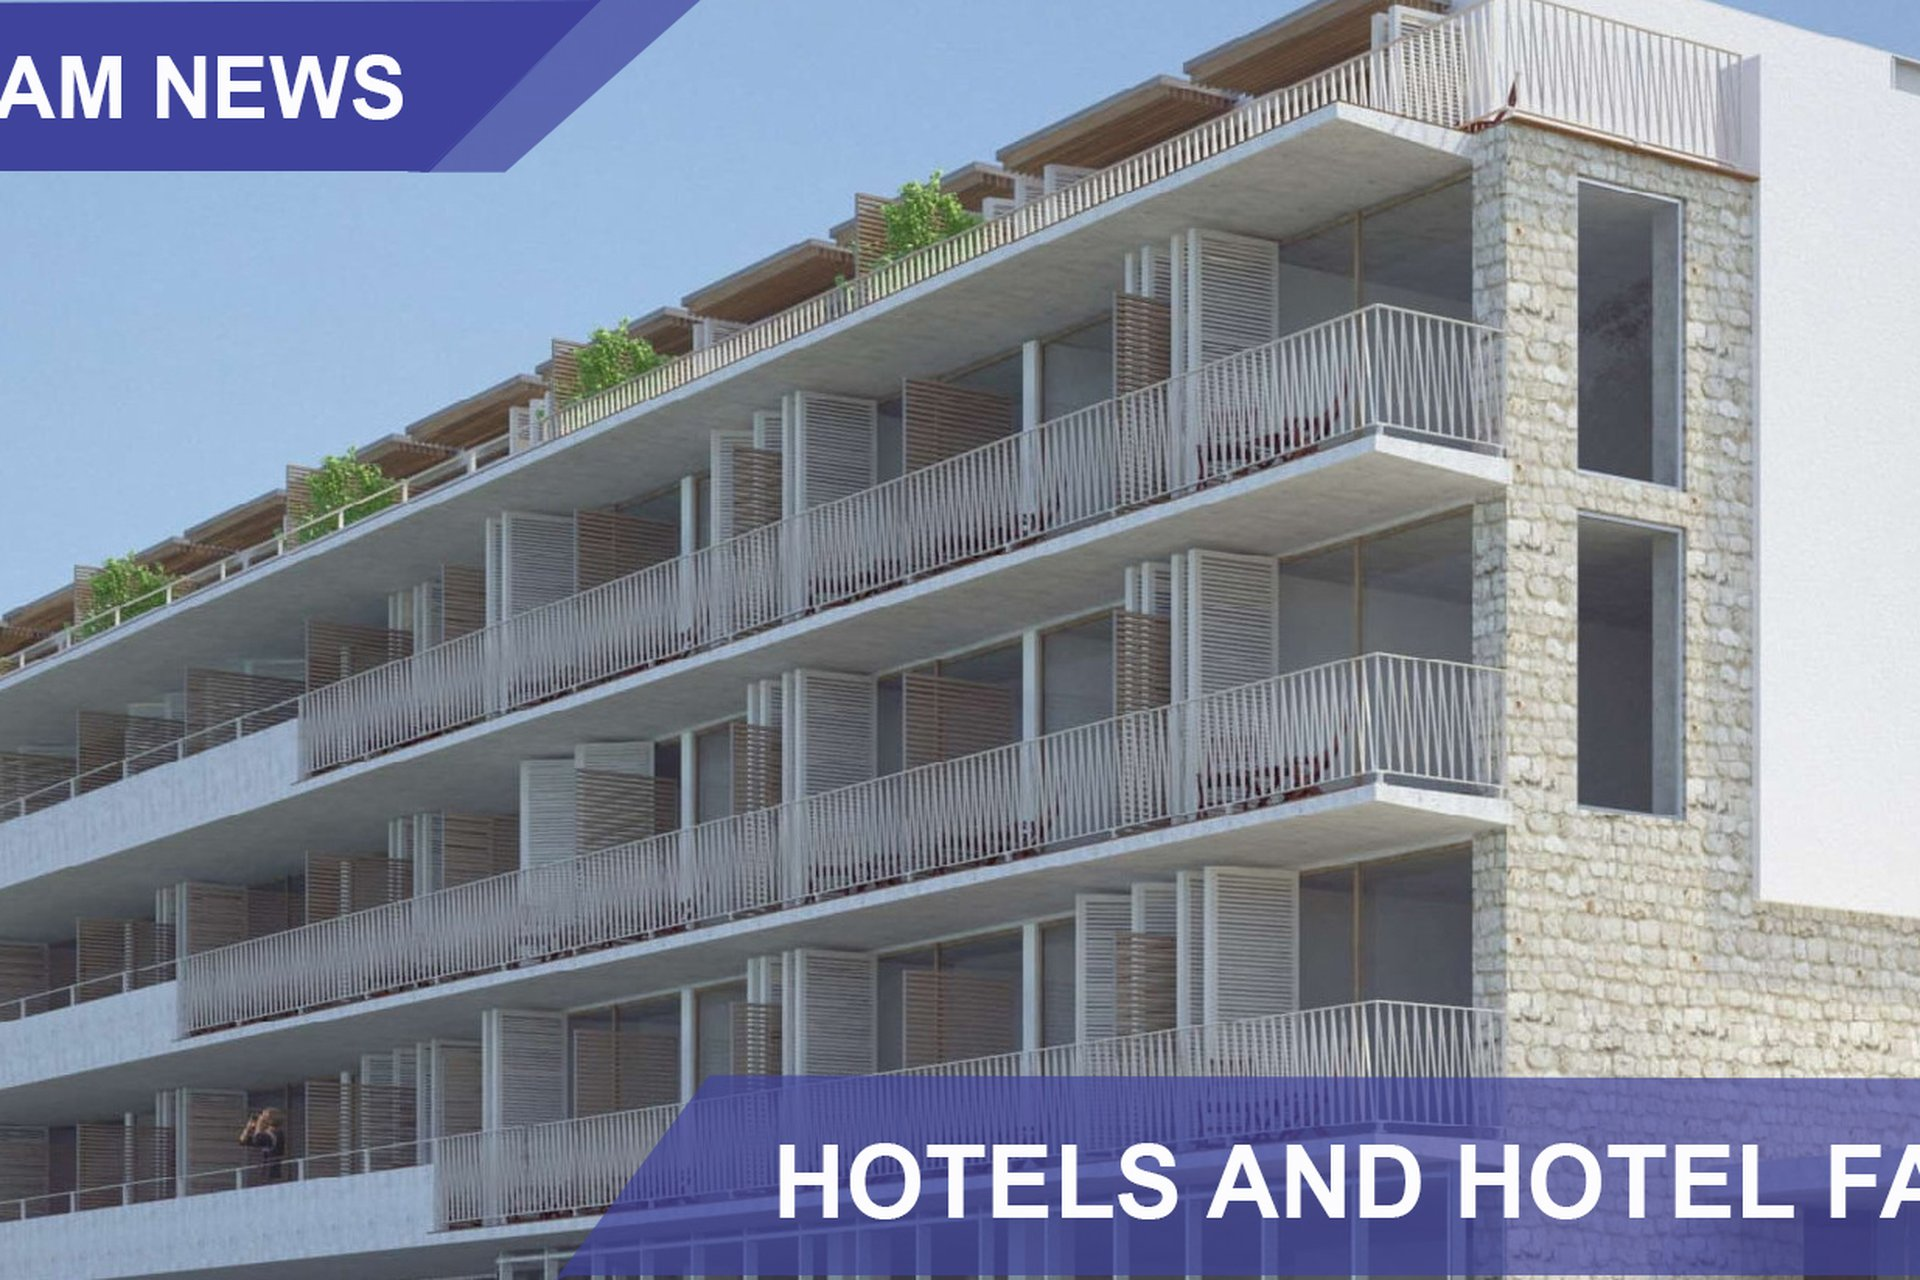 HOTELS AND HOTEL FACILITIES - INVESTMENT IN FINISHED FACILITIES WITH ESTABLISHED BUSINESS